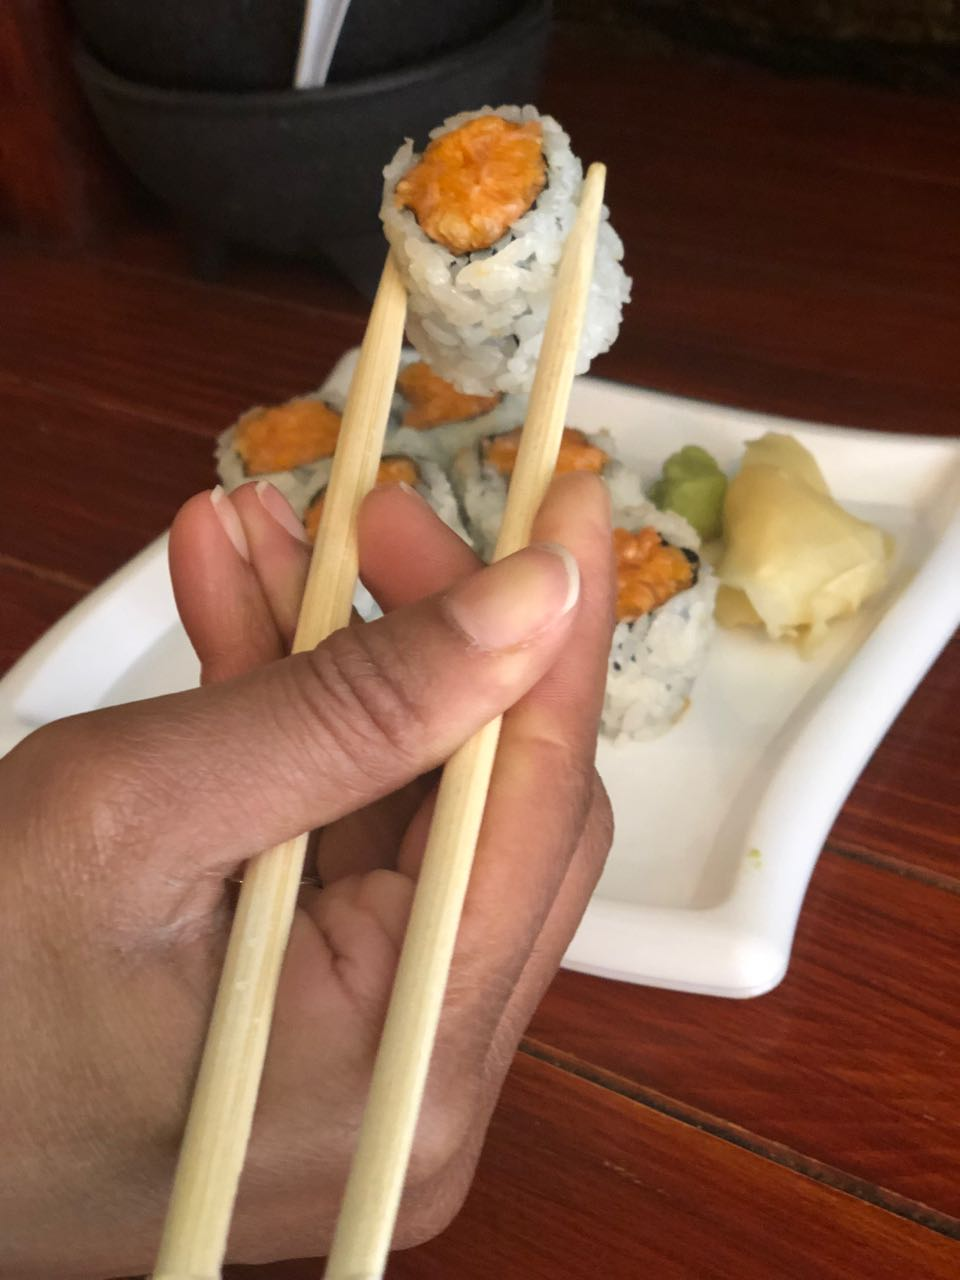 This Restaurant The Best Spot For Inexpensive And Good Sushi In NYC